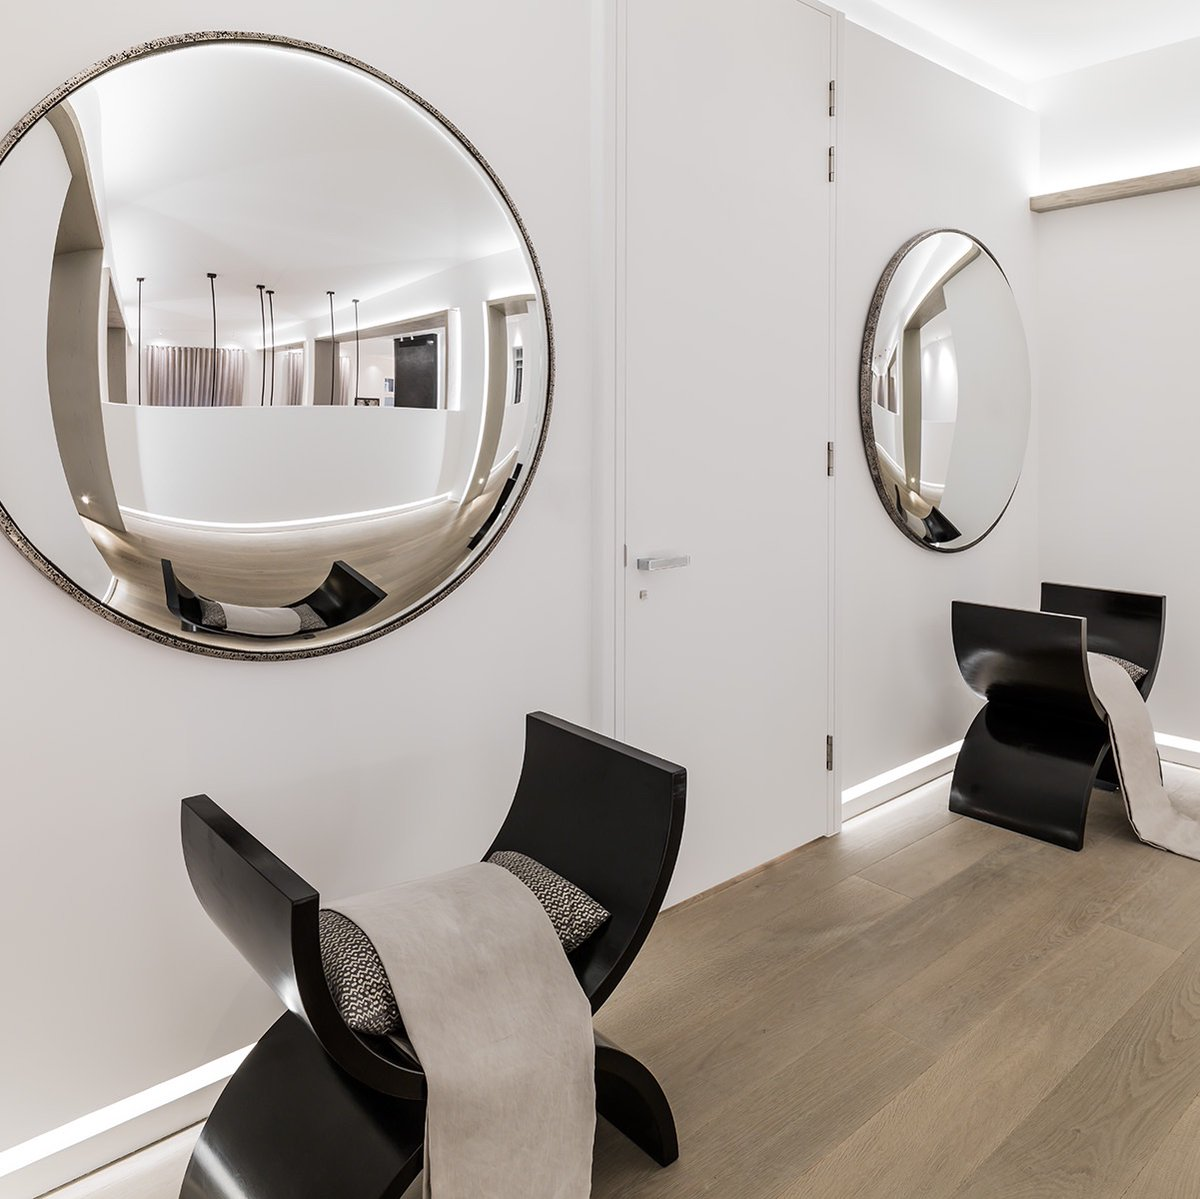 Here, the half - moon chairs underneath the circular mirrors echo each other creating shape and balance in the long corridor. #kellysdesigntips #interiordesign #homeideas pic.twitter.com/yYUlOYEicf